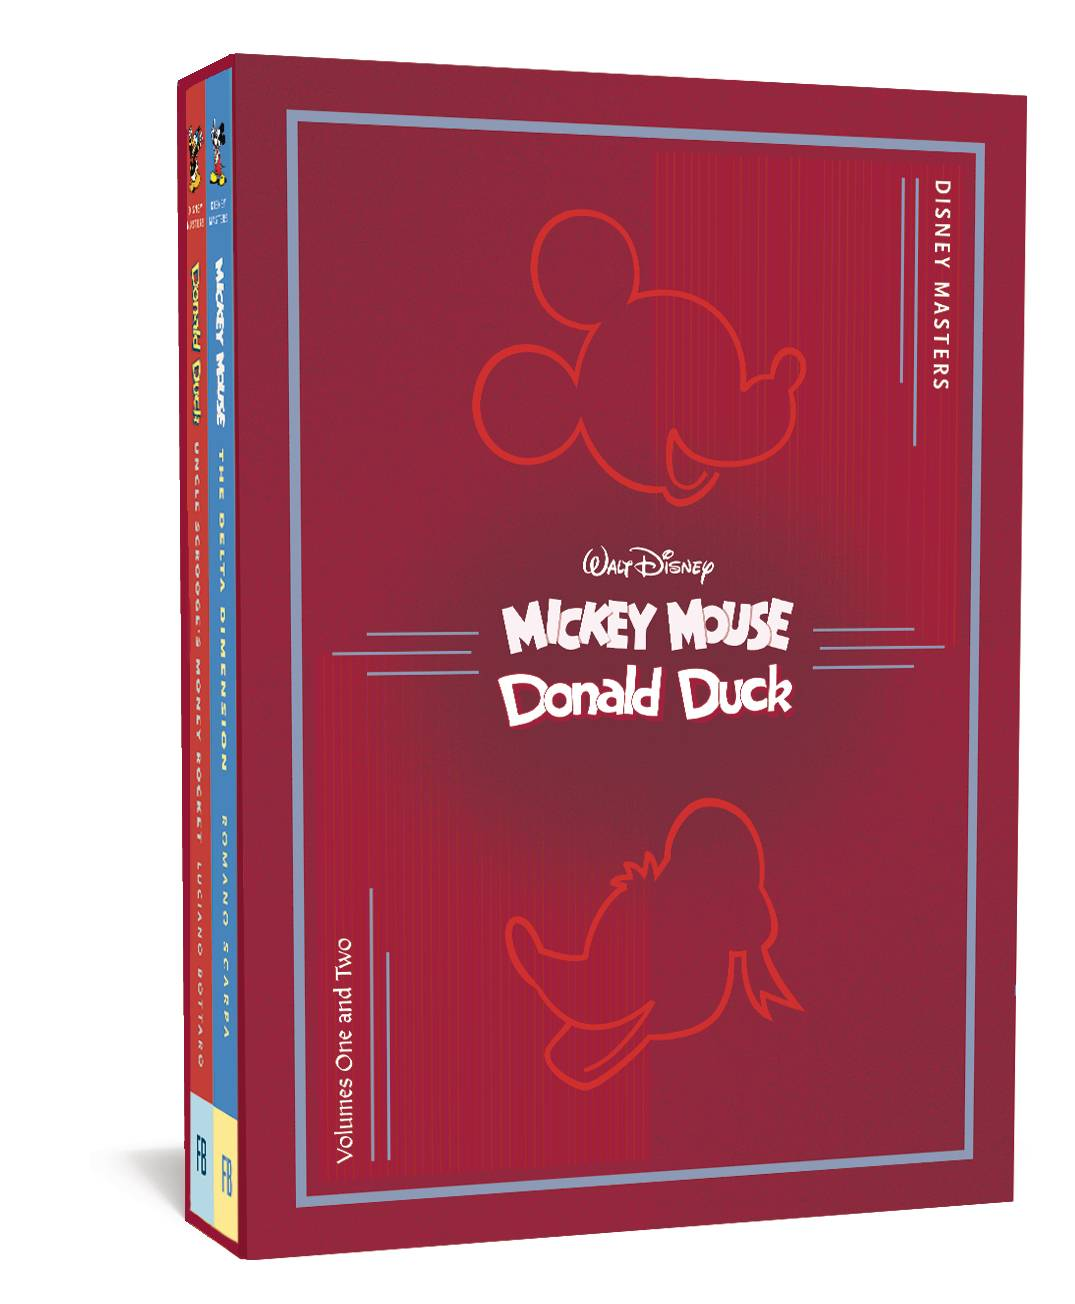 DISNEY MASTERS COLLECTORS HC BOX SET 1 & 2 SCARPA BOTTARO (A